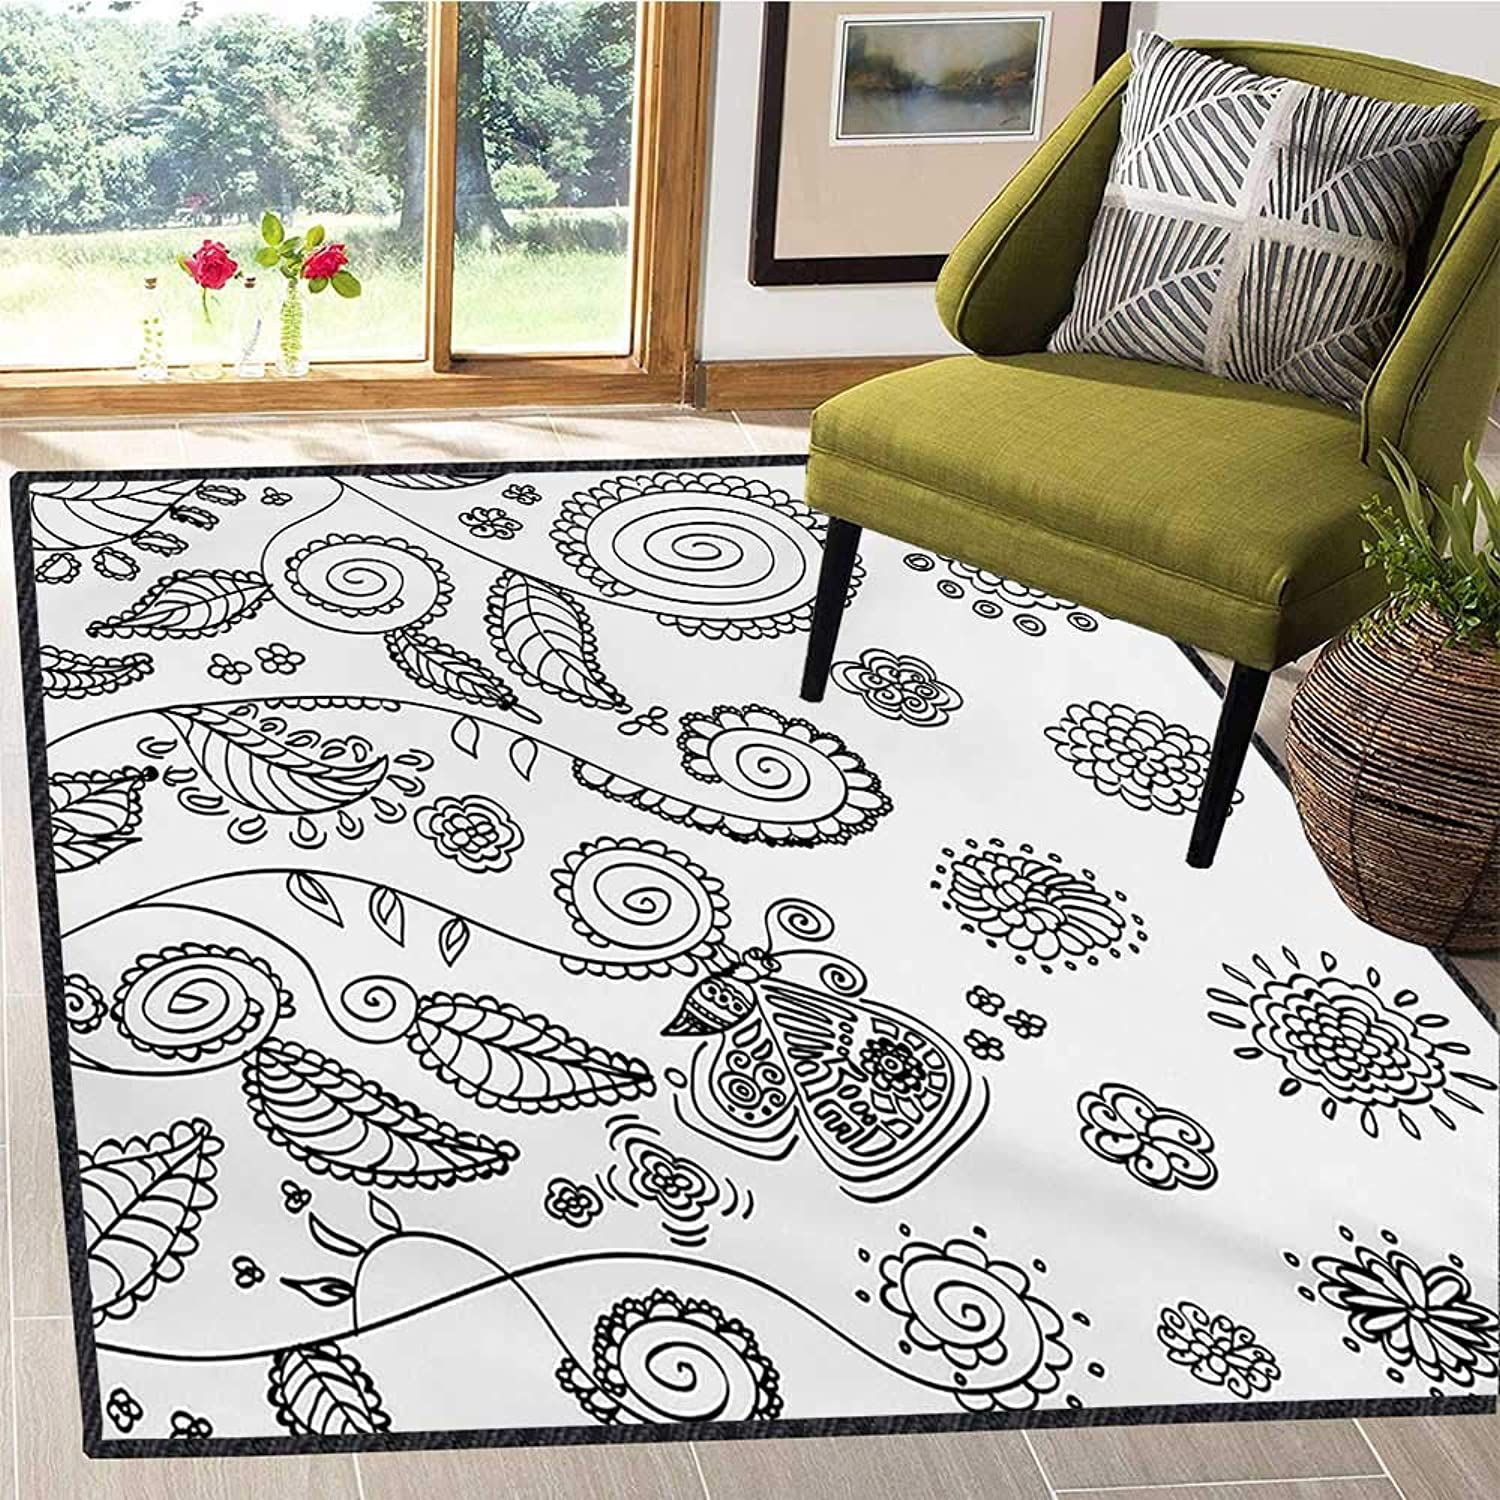 Floral, Door Mats for Inside, Doodle Style Circular Swirled Flower Petals Butterfly Leaves Curved Branches Design, Door Mat Increase 6x8 Ft Black White